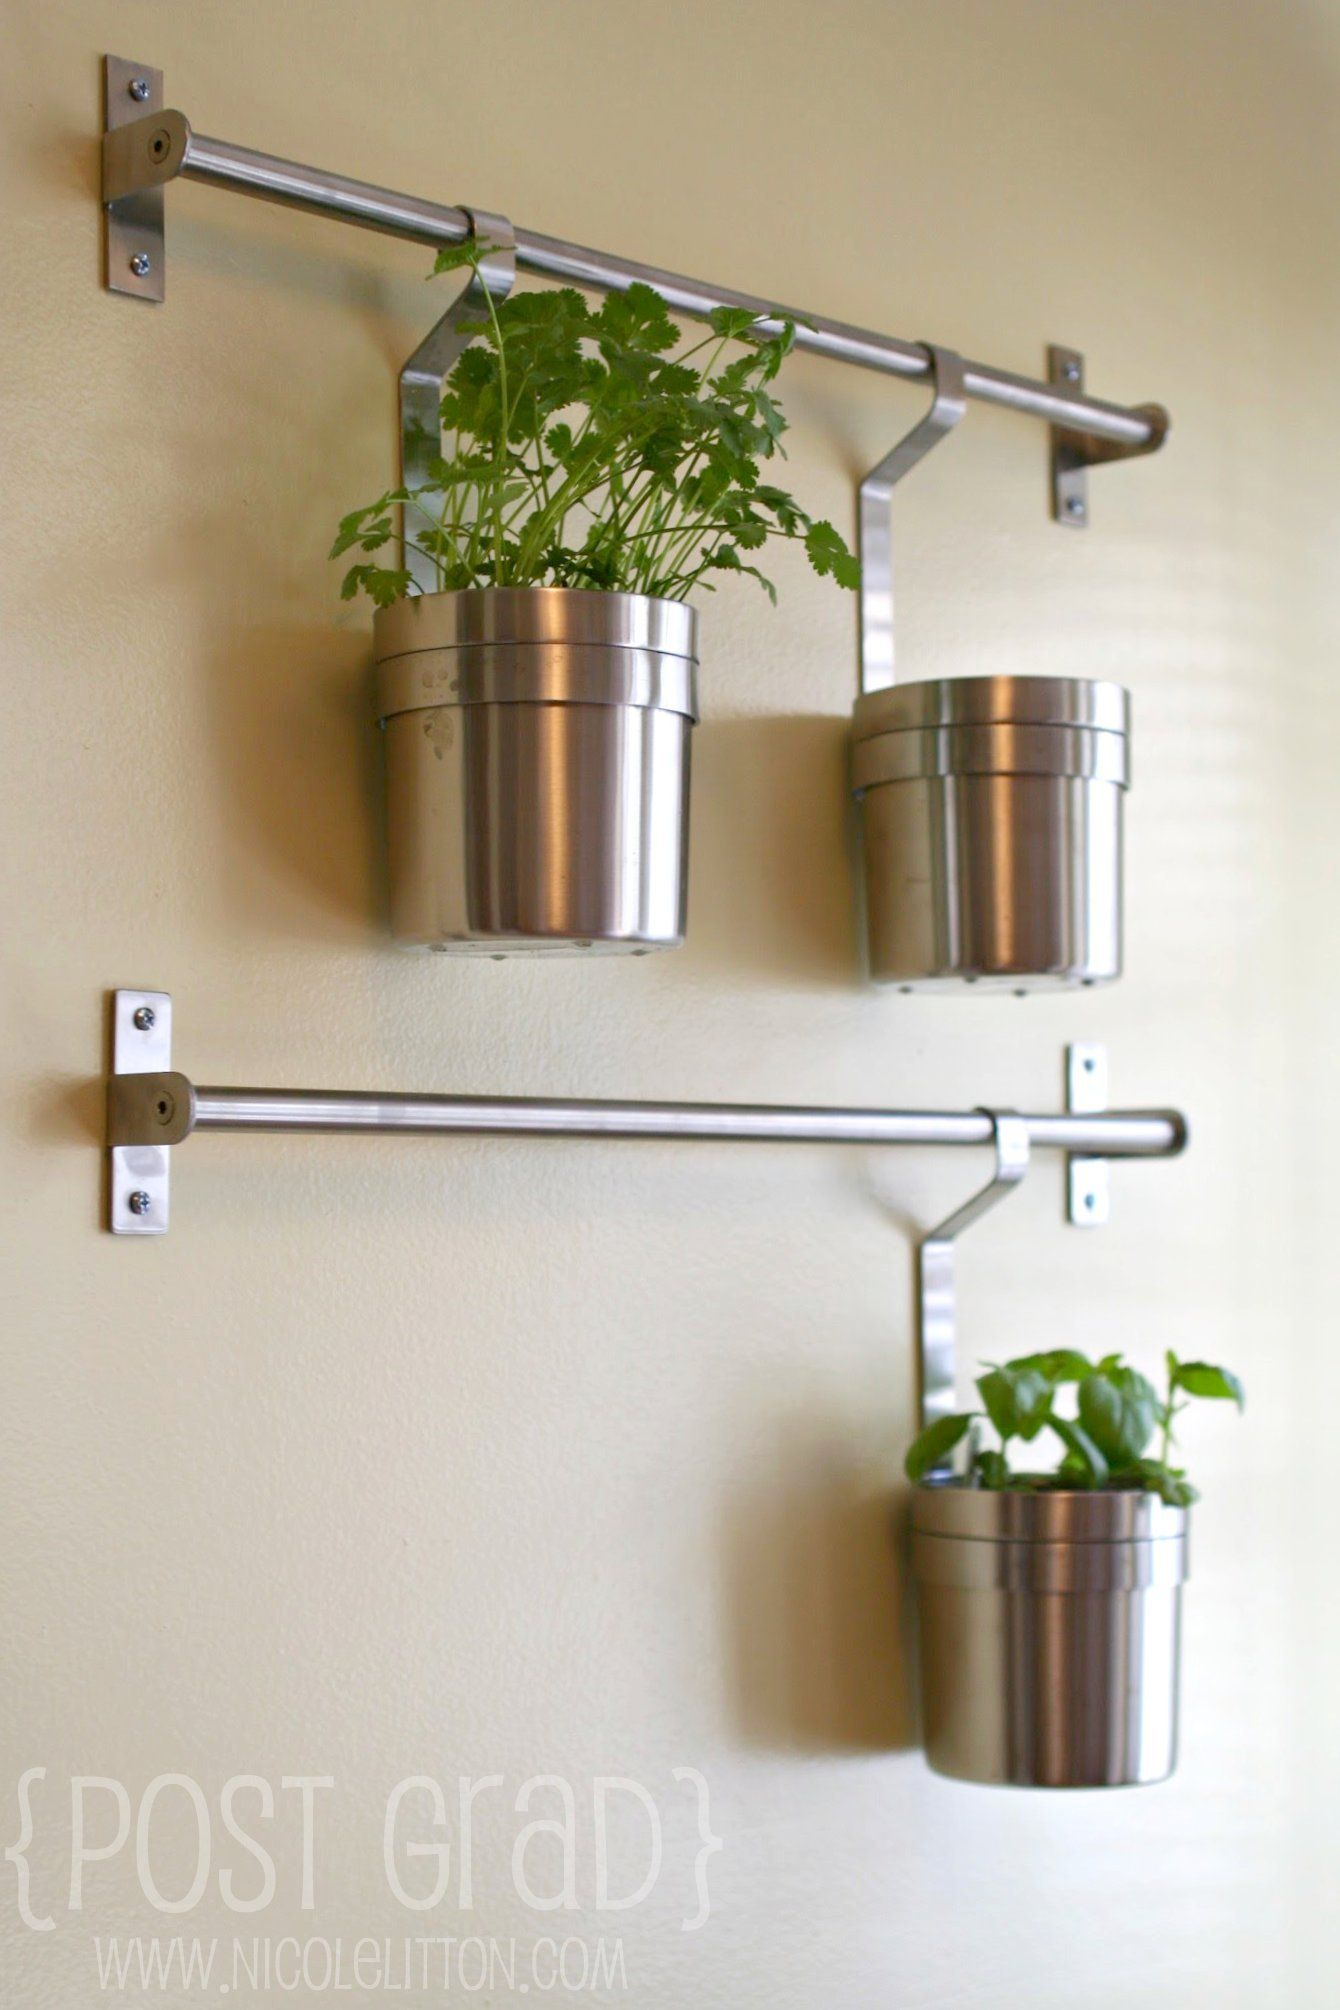 Hangplant Ikea Hang Plants In Kitchen Using Ikea Grundtal Herb Wall